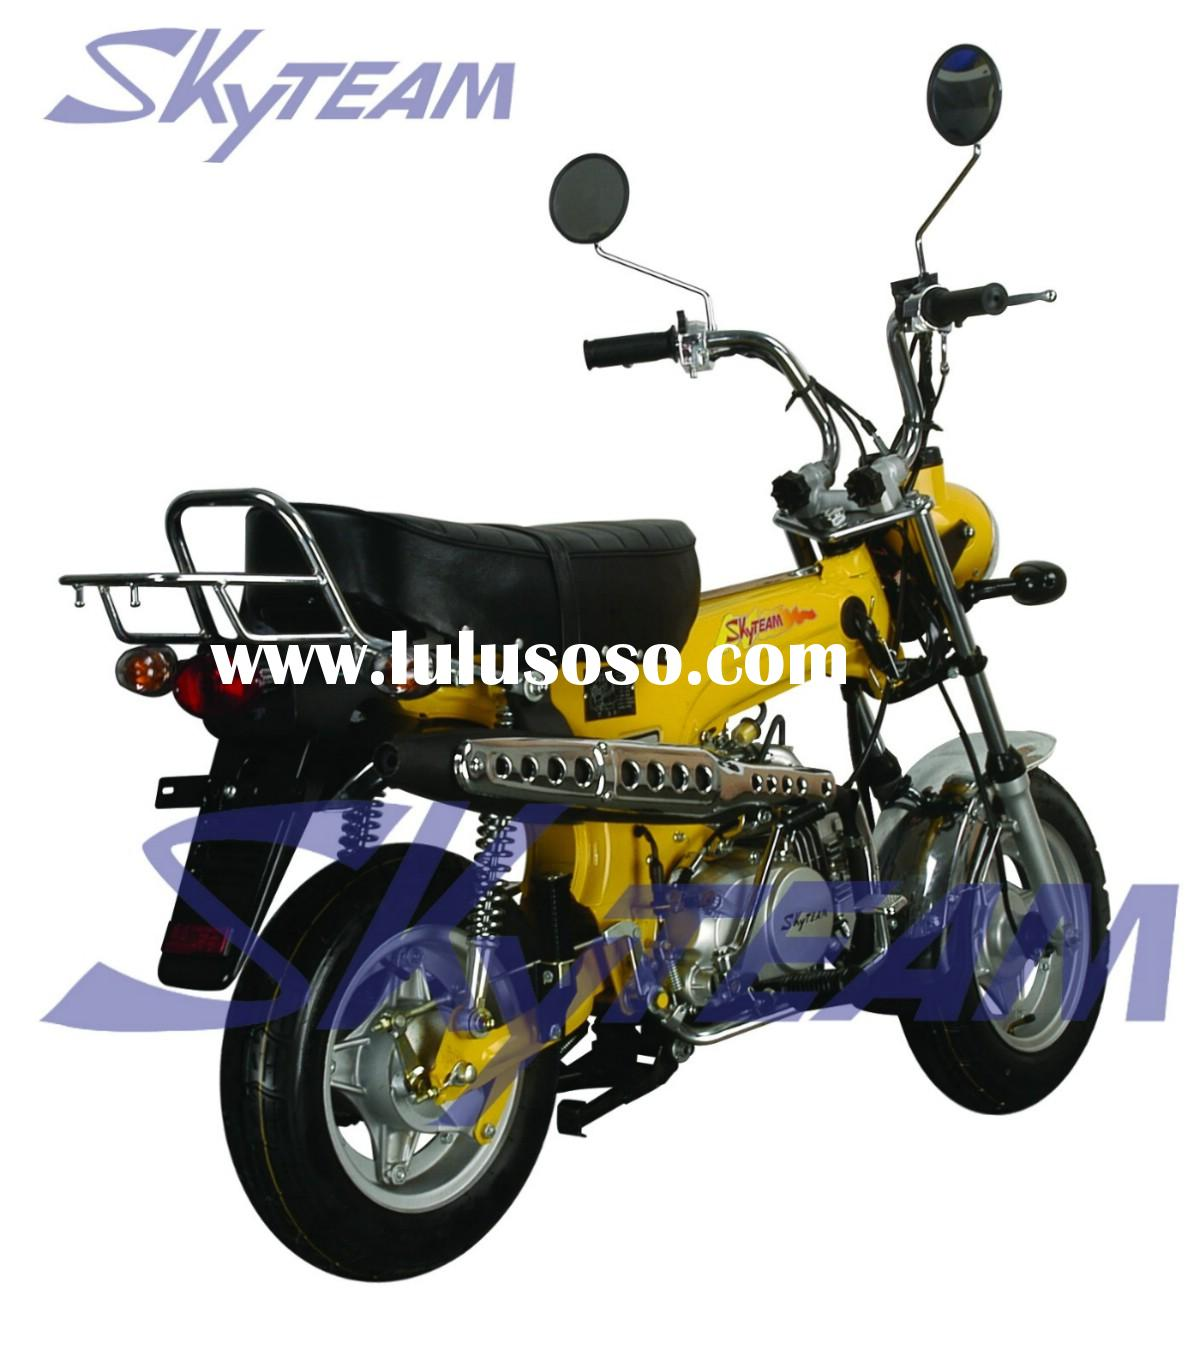 SKYTEAM 50cc 4 stroke dax SKYMAX motorcycle(EEC APPROVAL) with NEW 5.5L BIG FUEL TANK